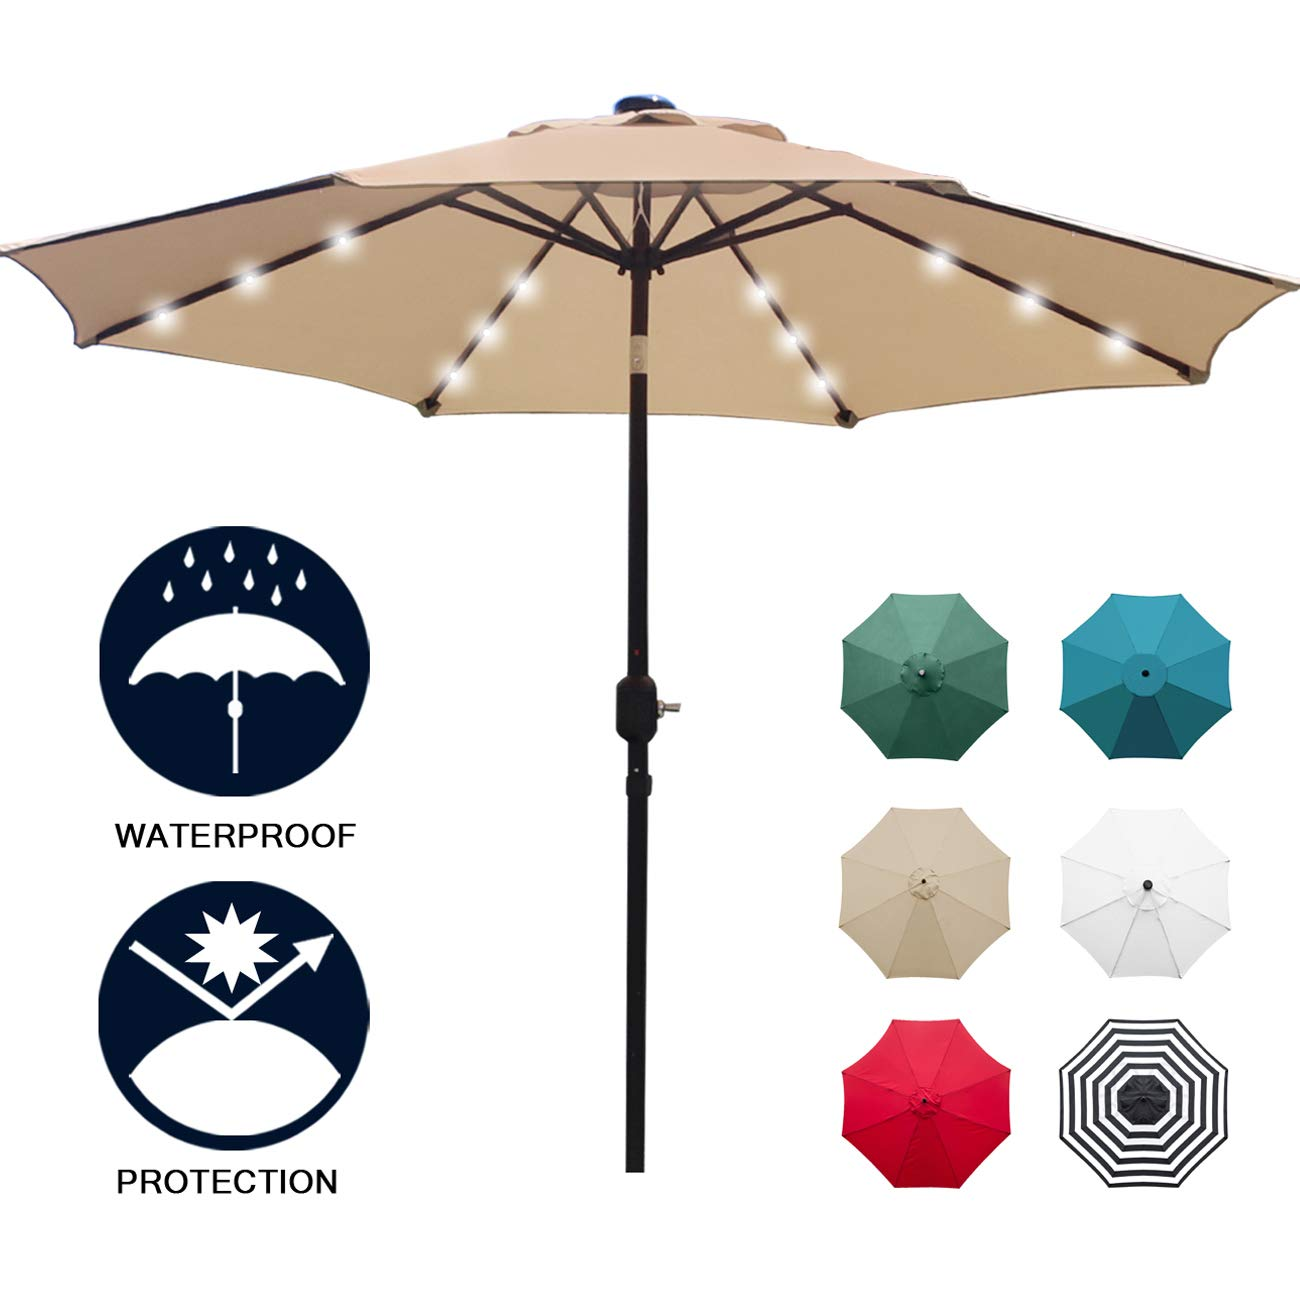 Sunnyglade 9' Solar 24 LED Lighted Patio Umbrella with 8 Ribs/Tilt Adjustment and Crank Lift System (Light Tan) by Sunnyglade